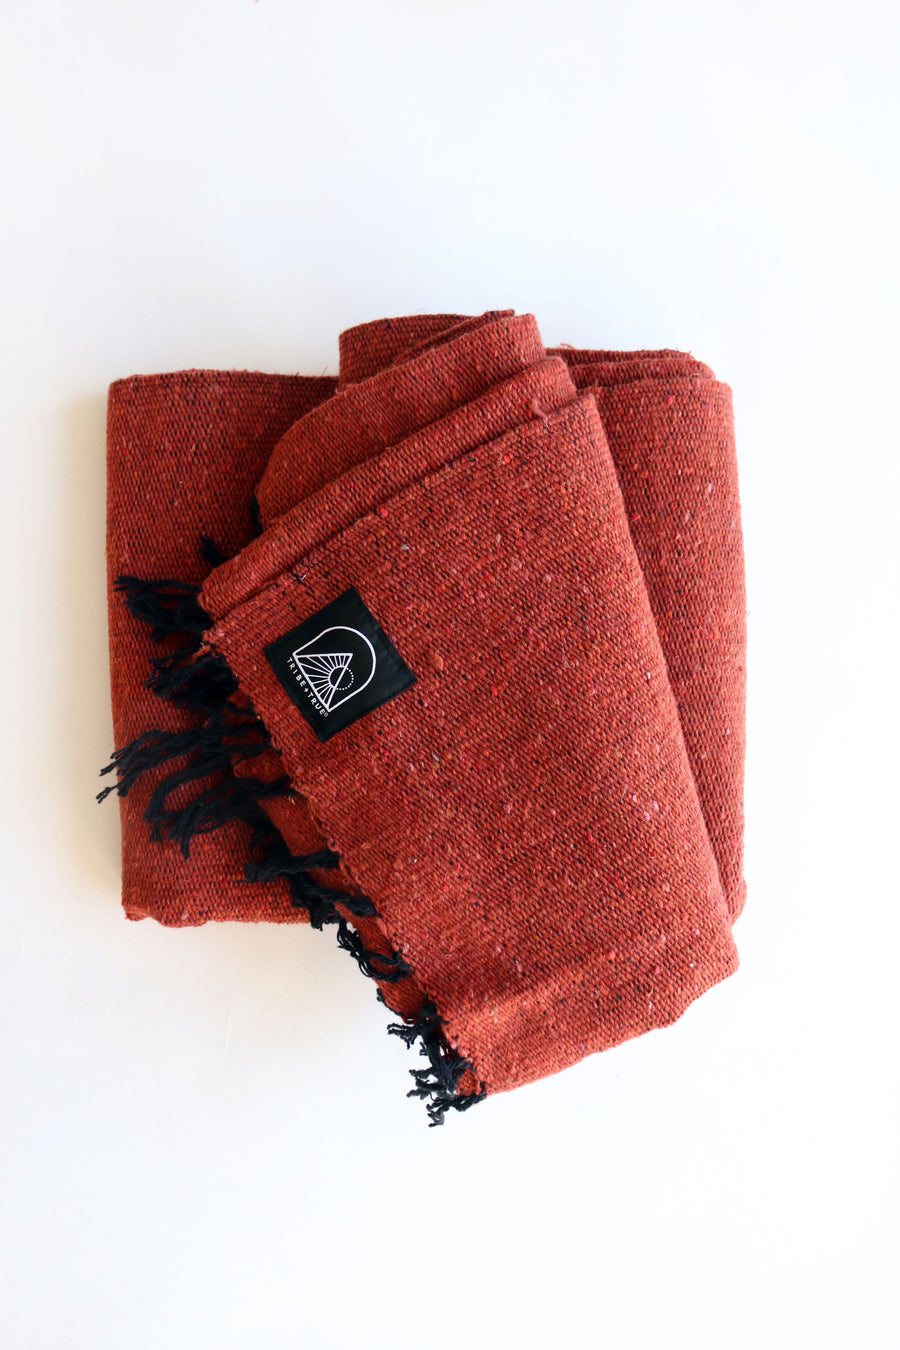 Terracotta Red // Handwoven Blanket